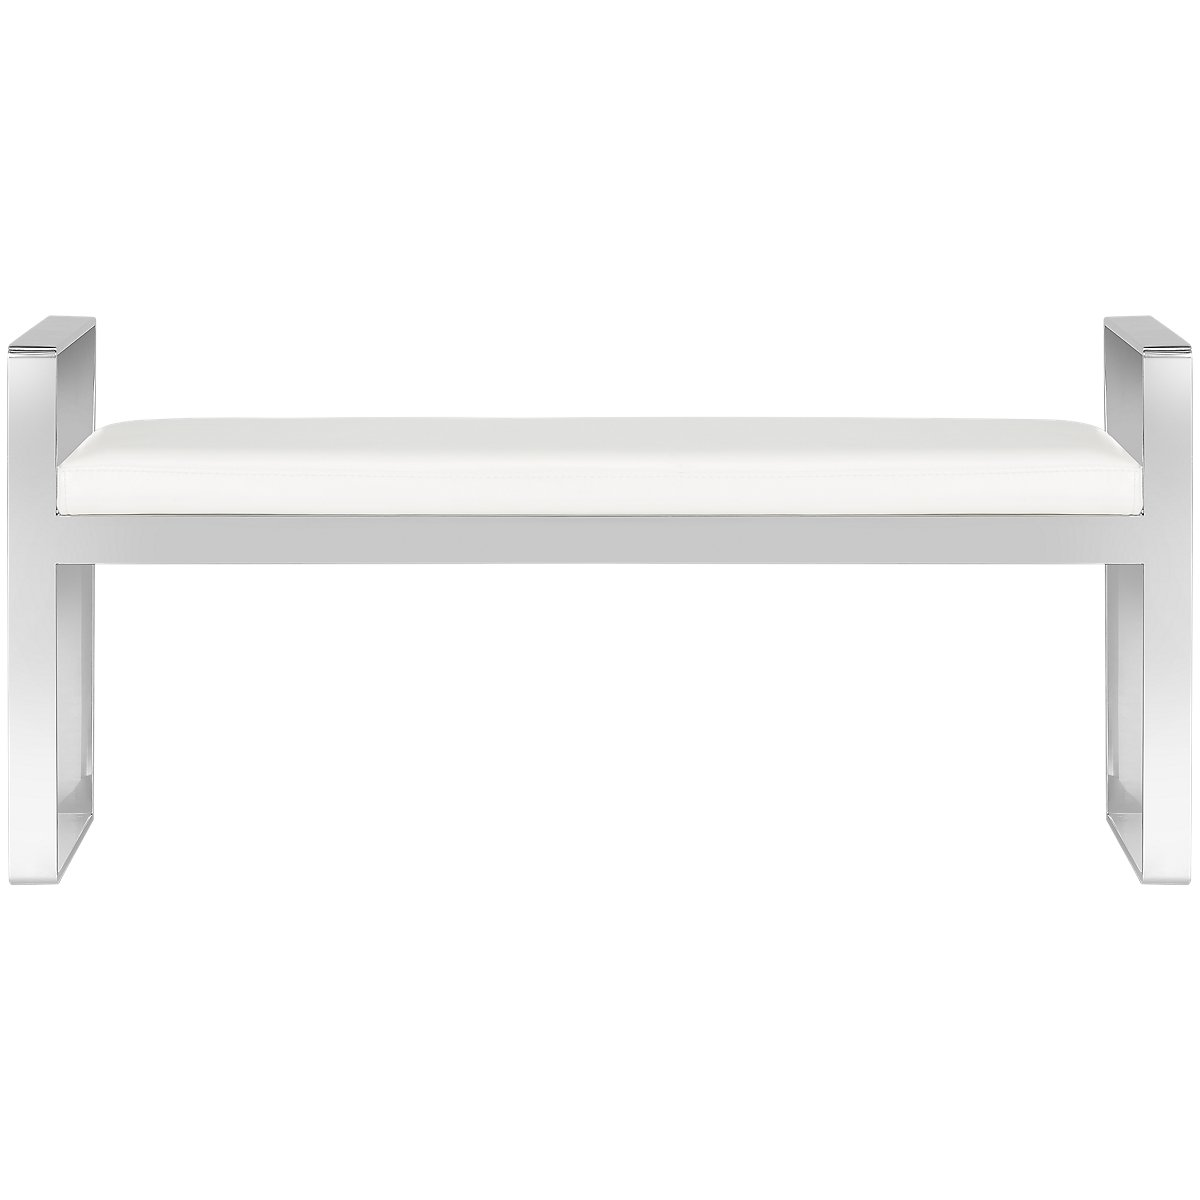 City furniture angelo white upholstered bench White upholstered bench